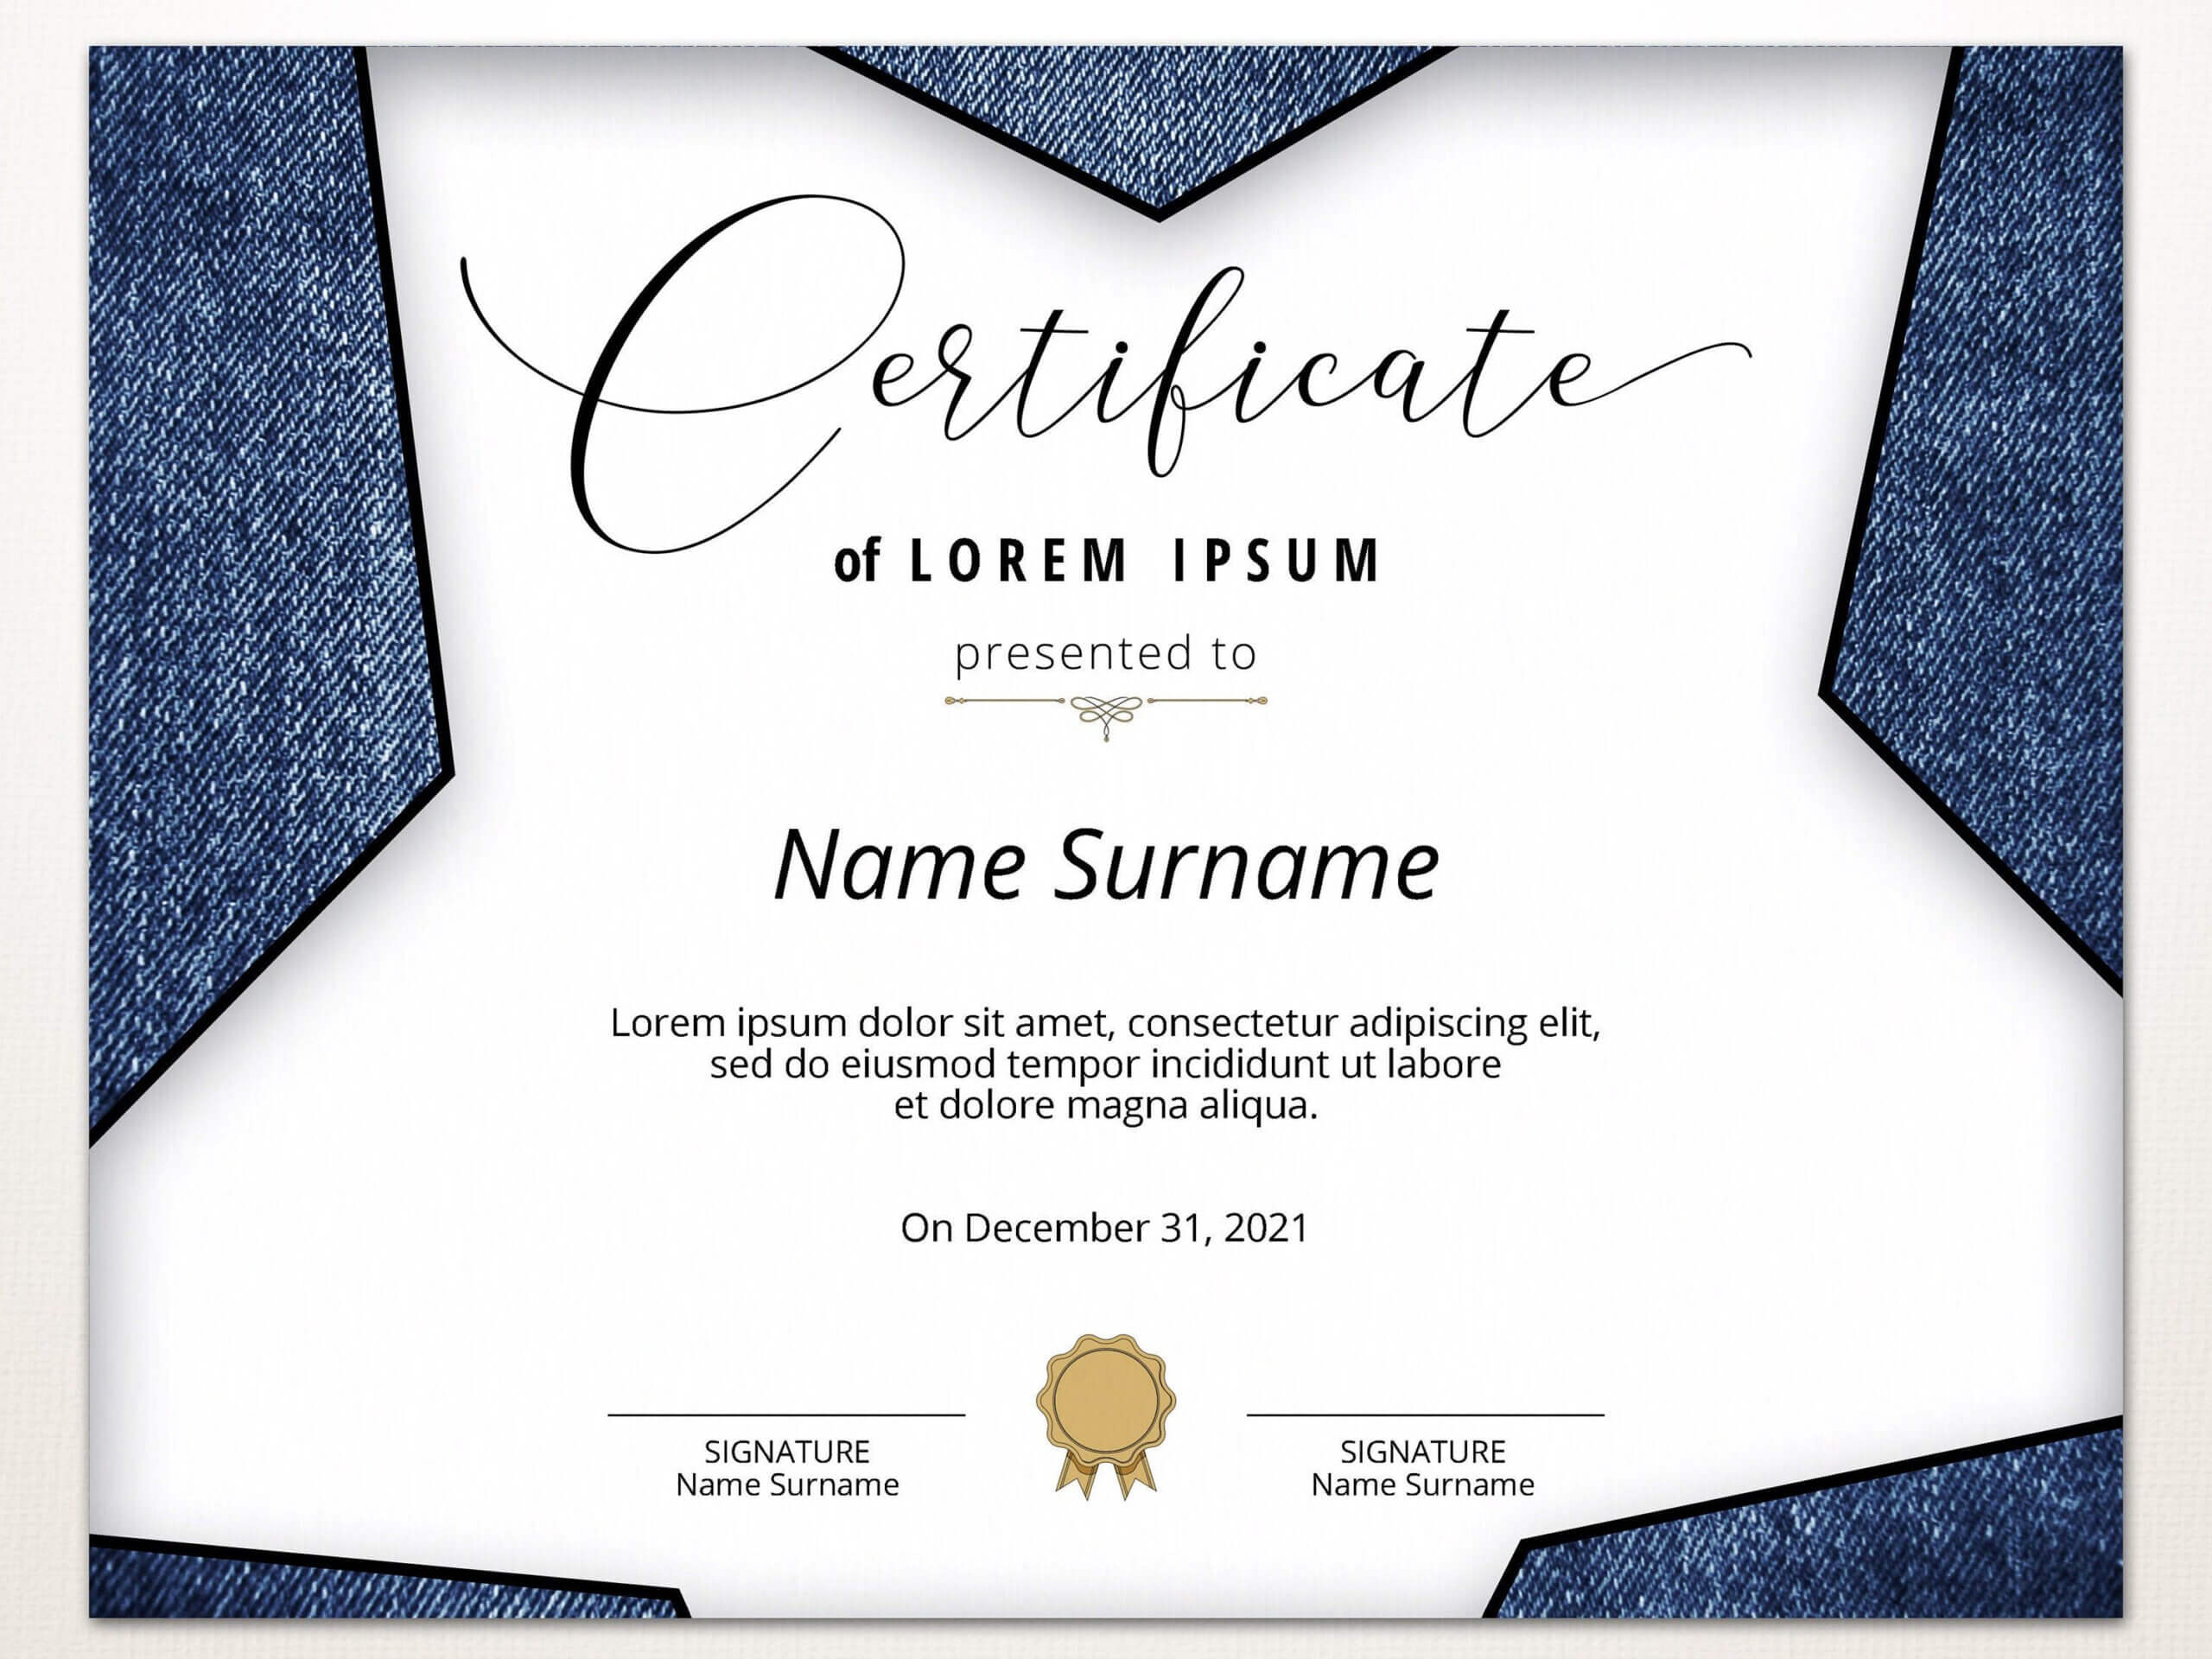 Editable Blank Certificate Template, Printable Certificate Throughout Update Certificates That Use Certificate Templates